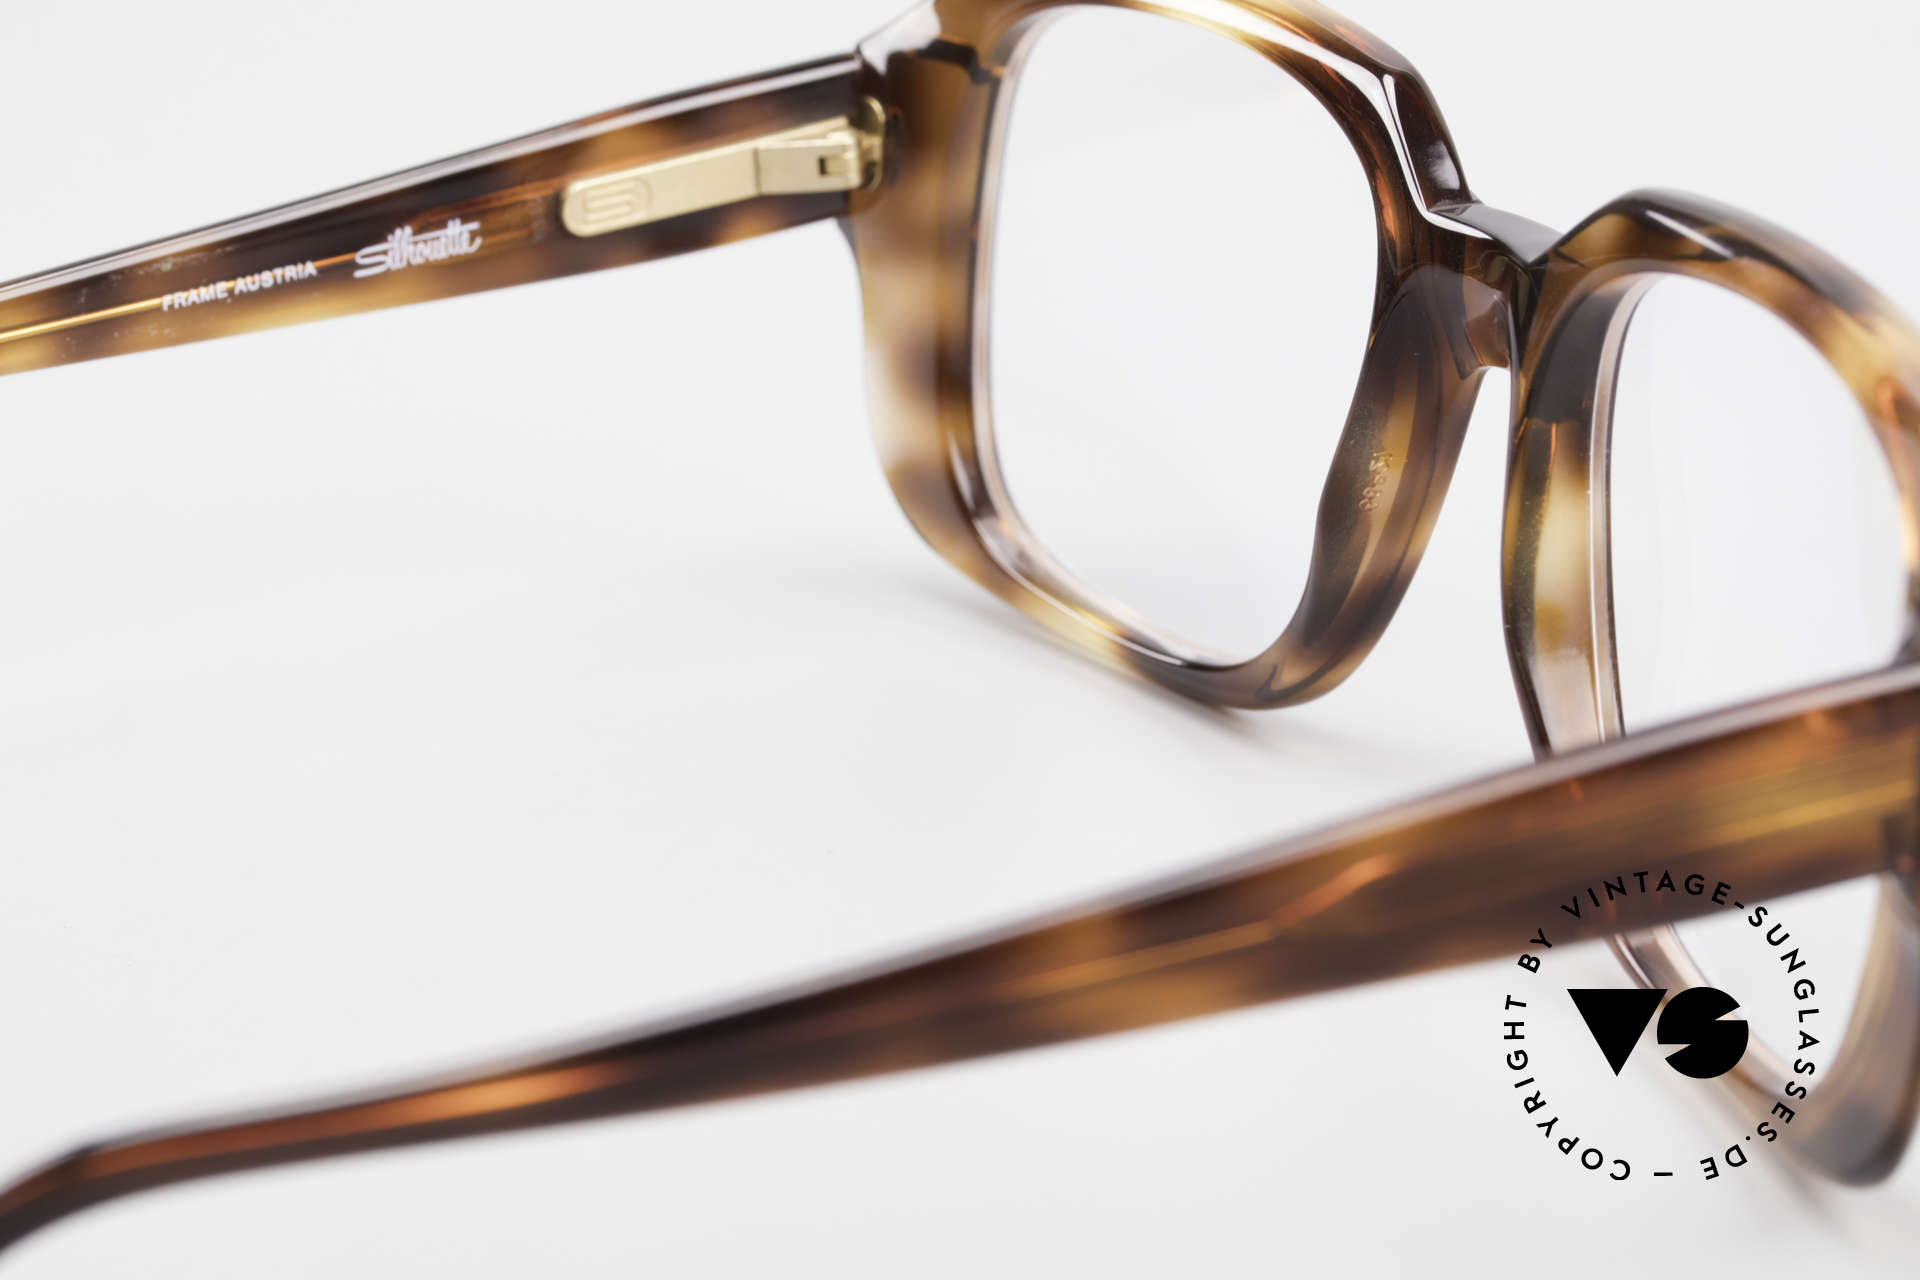 Silhouette M2062 80's Old School Eyeglasses, NO retro frame, but truly 'OLD SCHOOL' vintage!, Made for Men